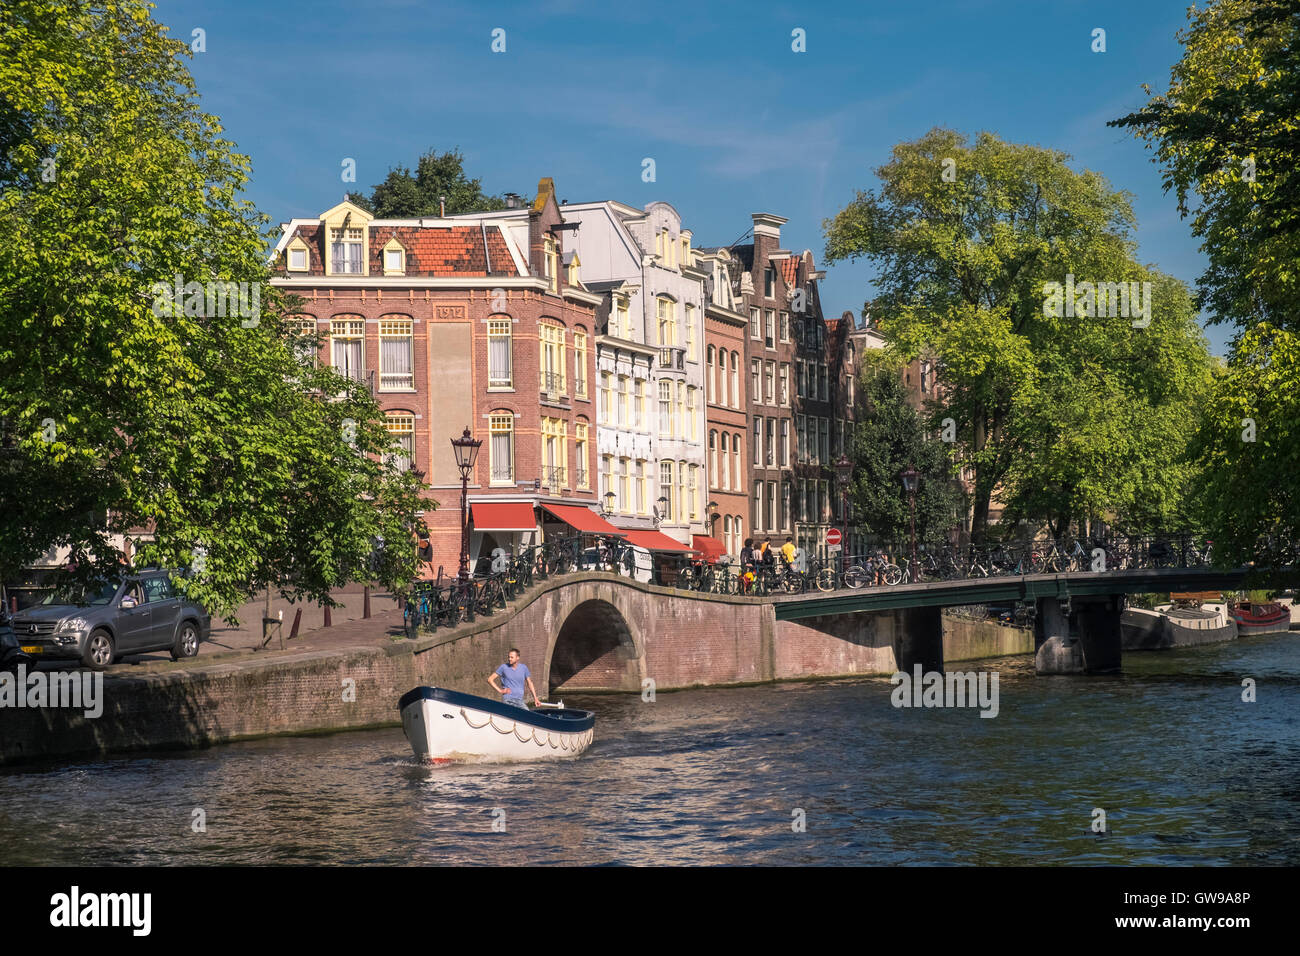 Small boat on Prinsengracht canal, Amsterdam, Netherlands. - Stock Image